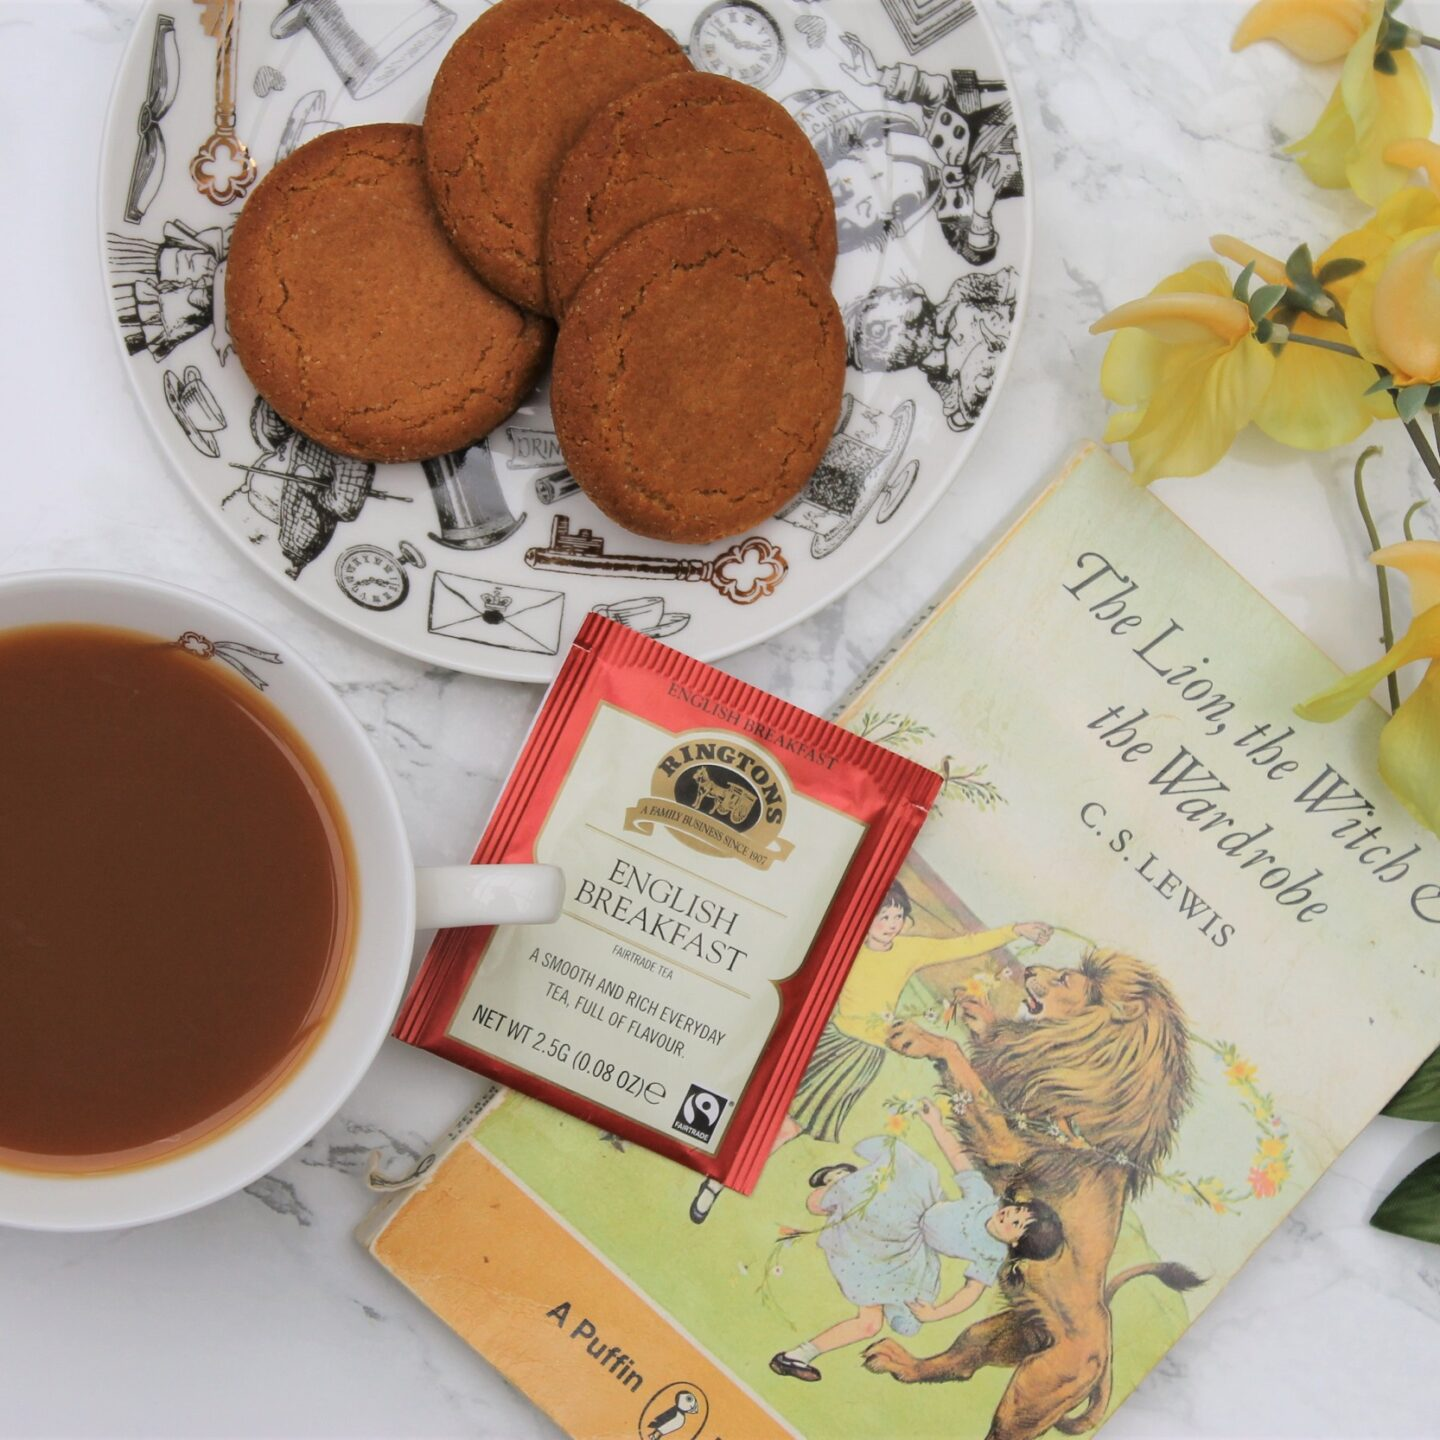 Ringtons English Breakfast Tea Review